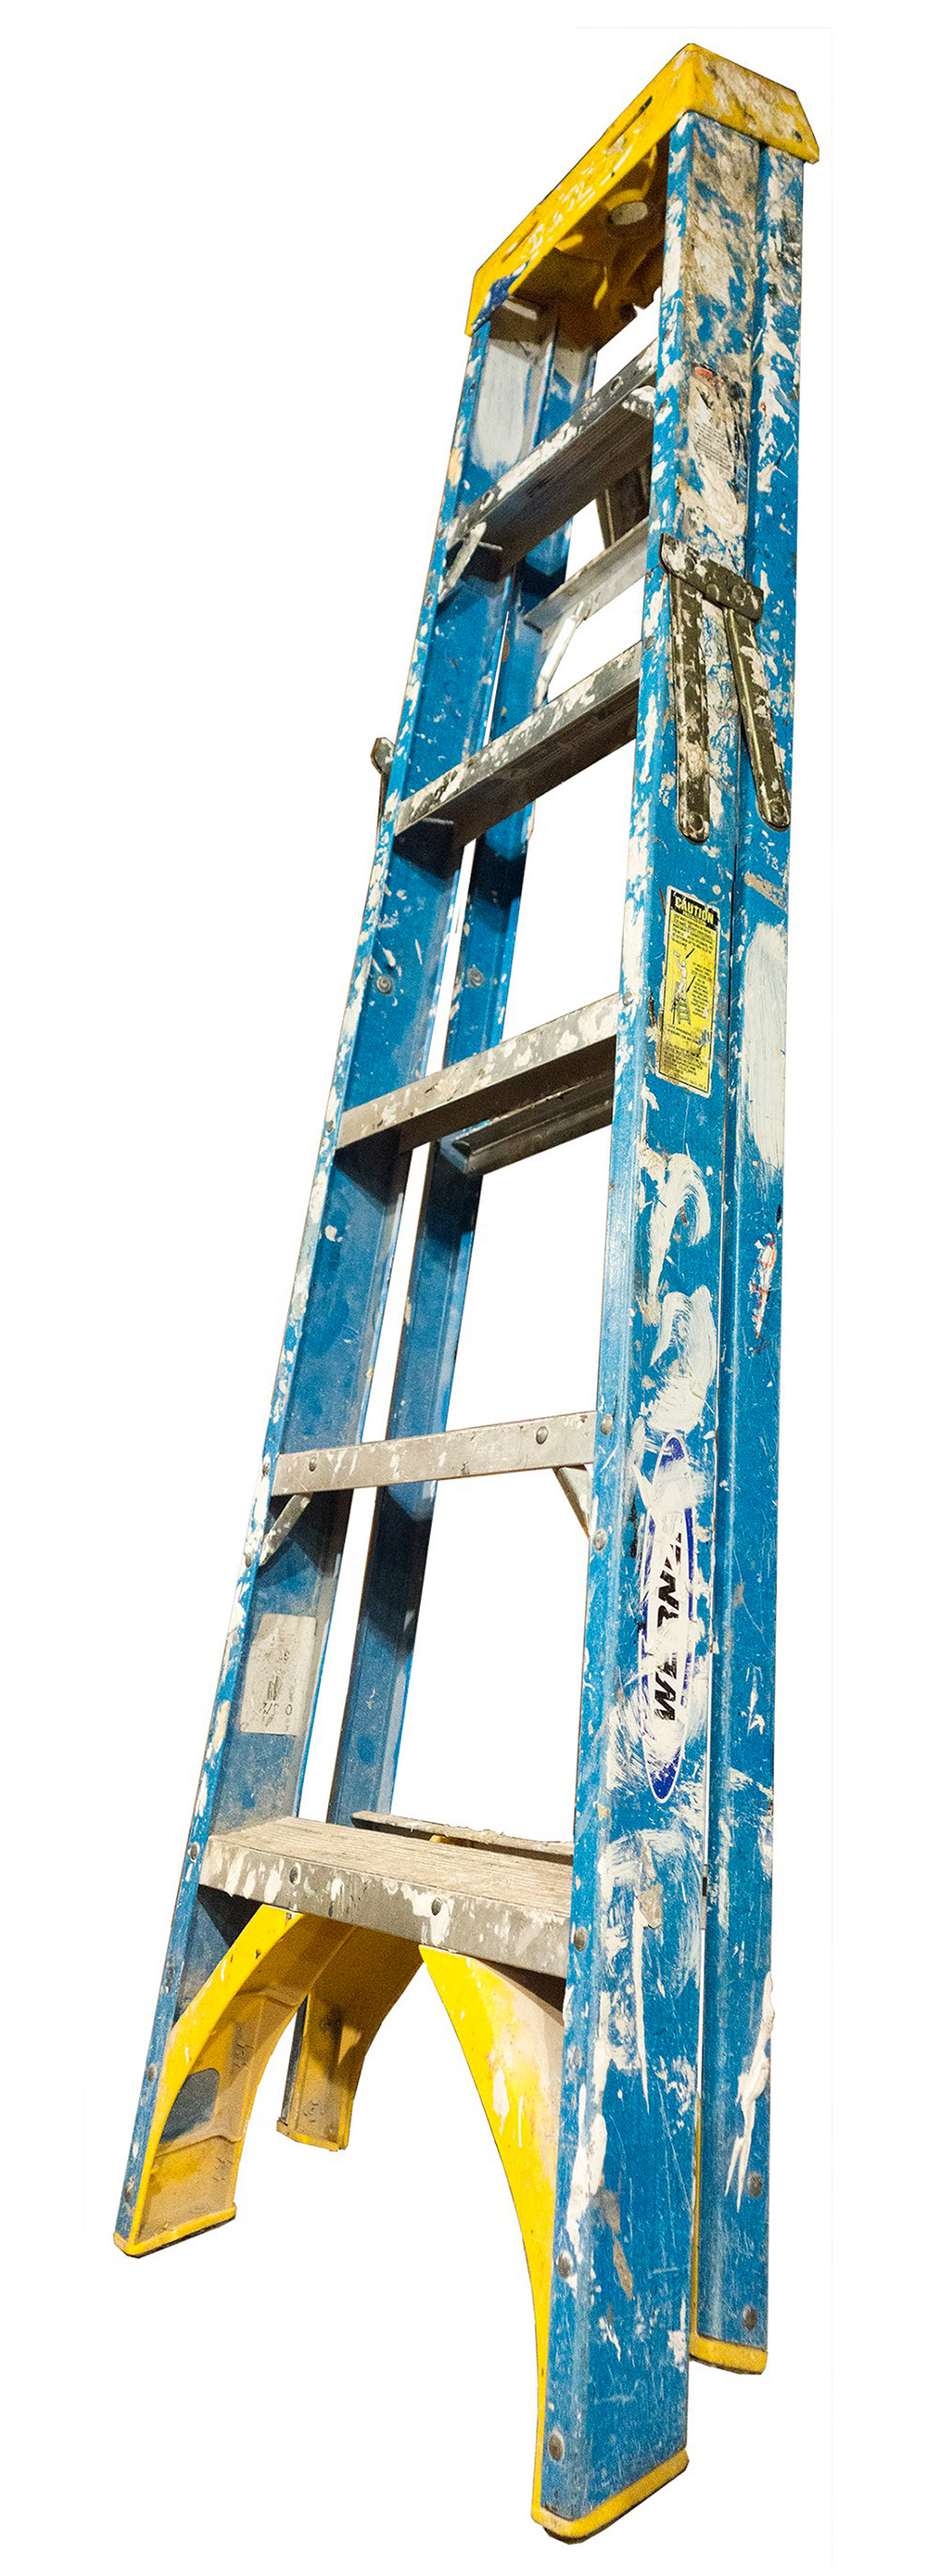 Medium Folding Ladder: Blue with Yellow Top and Paint, 2014  edition of 10 pigment ink on Photo-Tex paper 72 x 21 inches